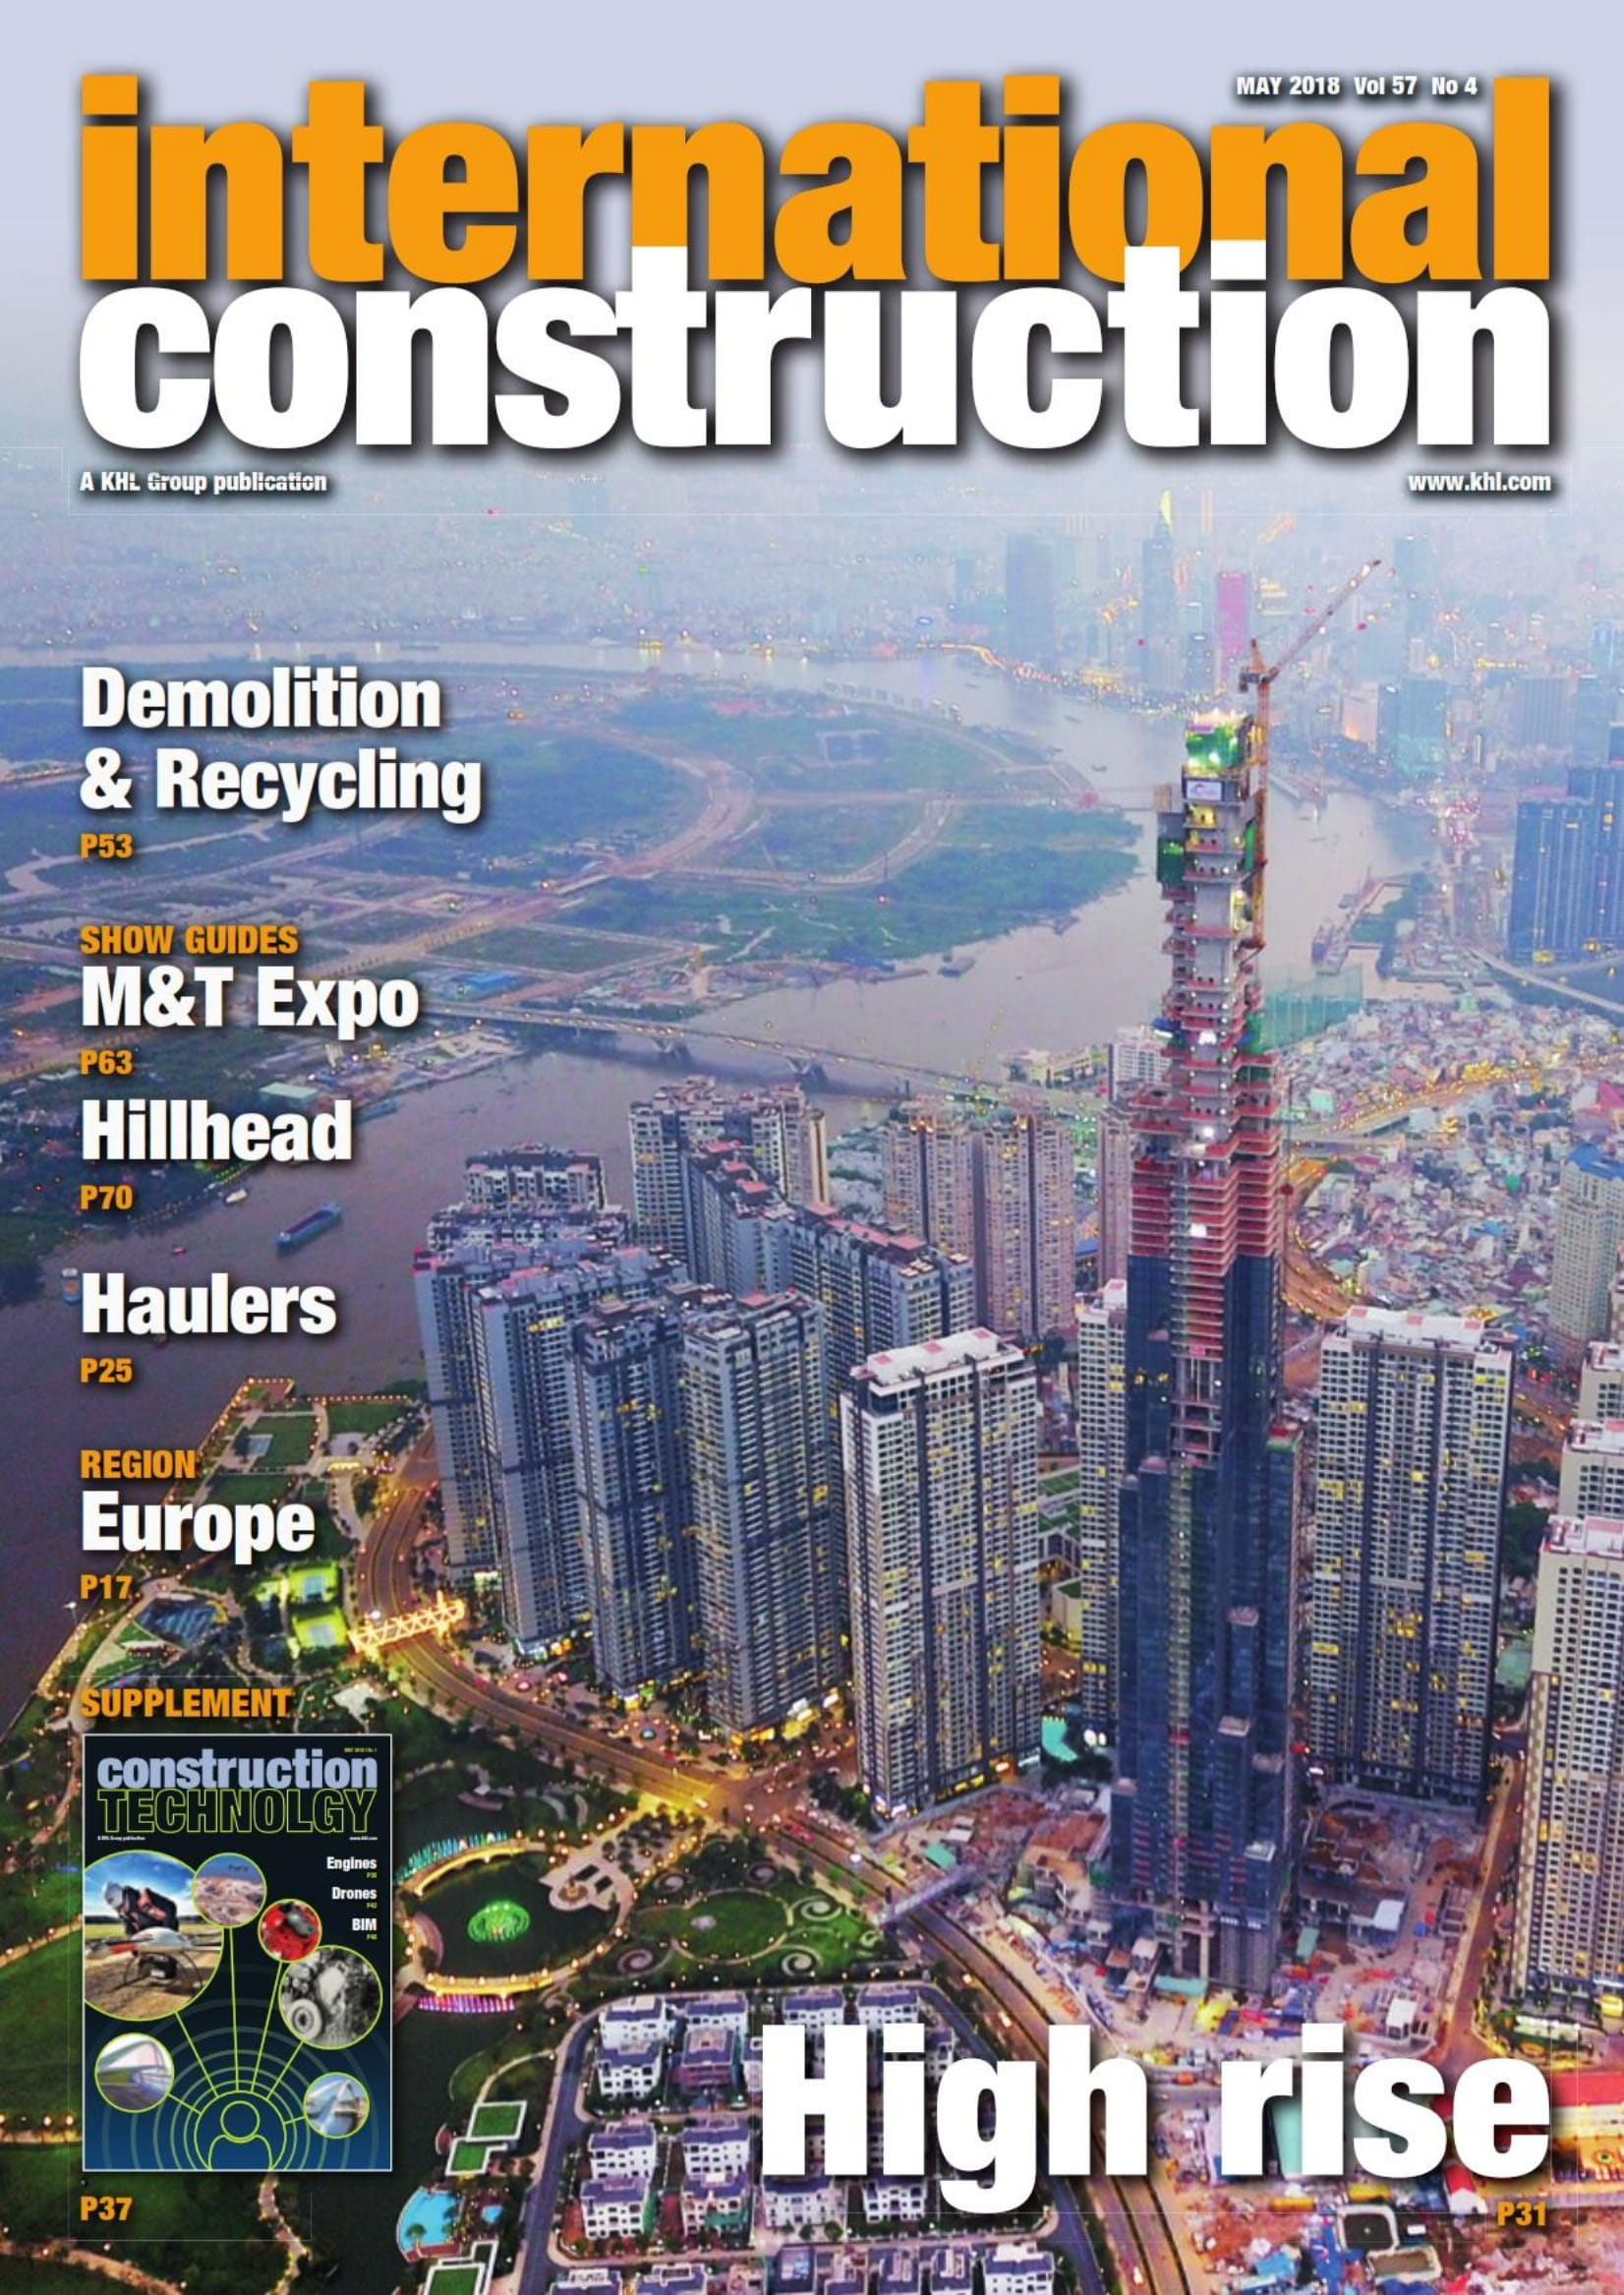 LANDMARK81 - INTERNATIONAL CONSTRUCTION-1